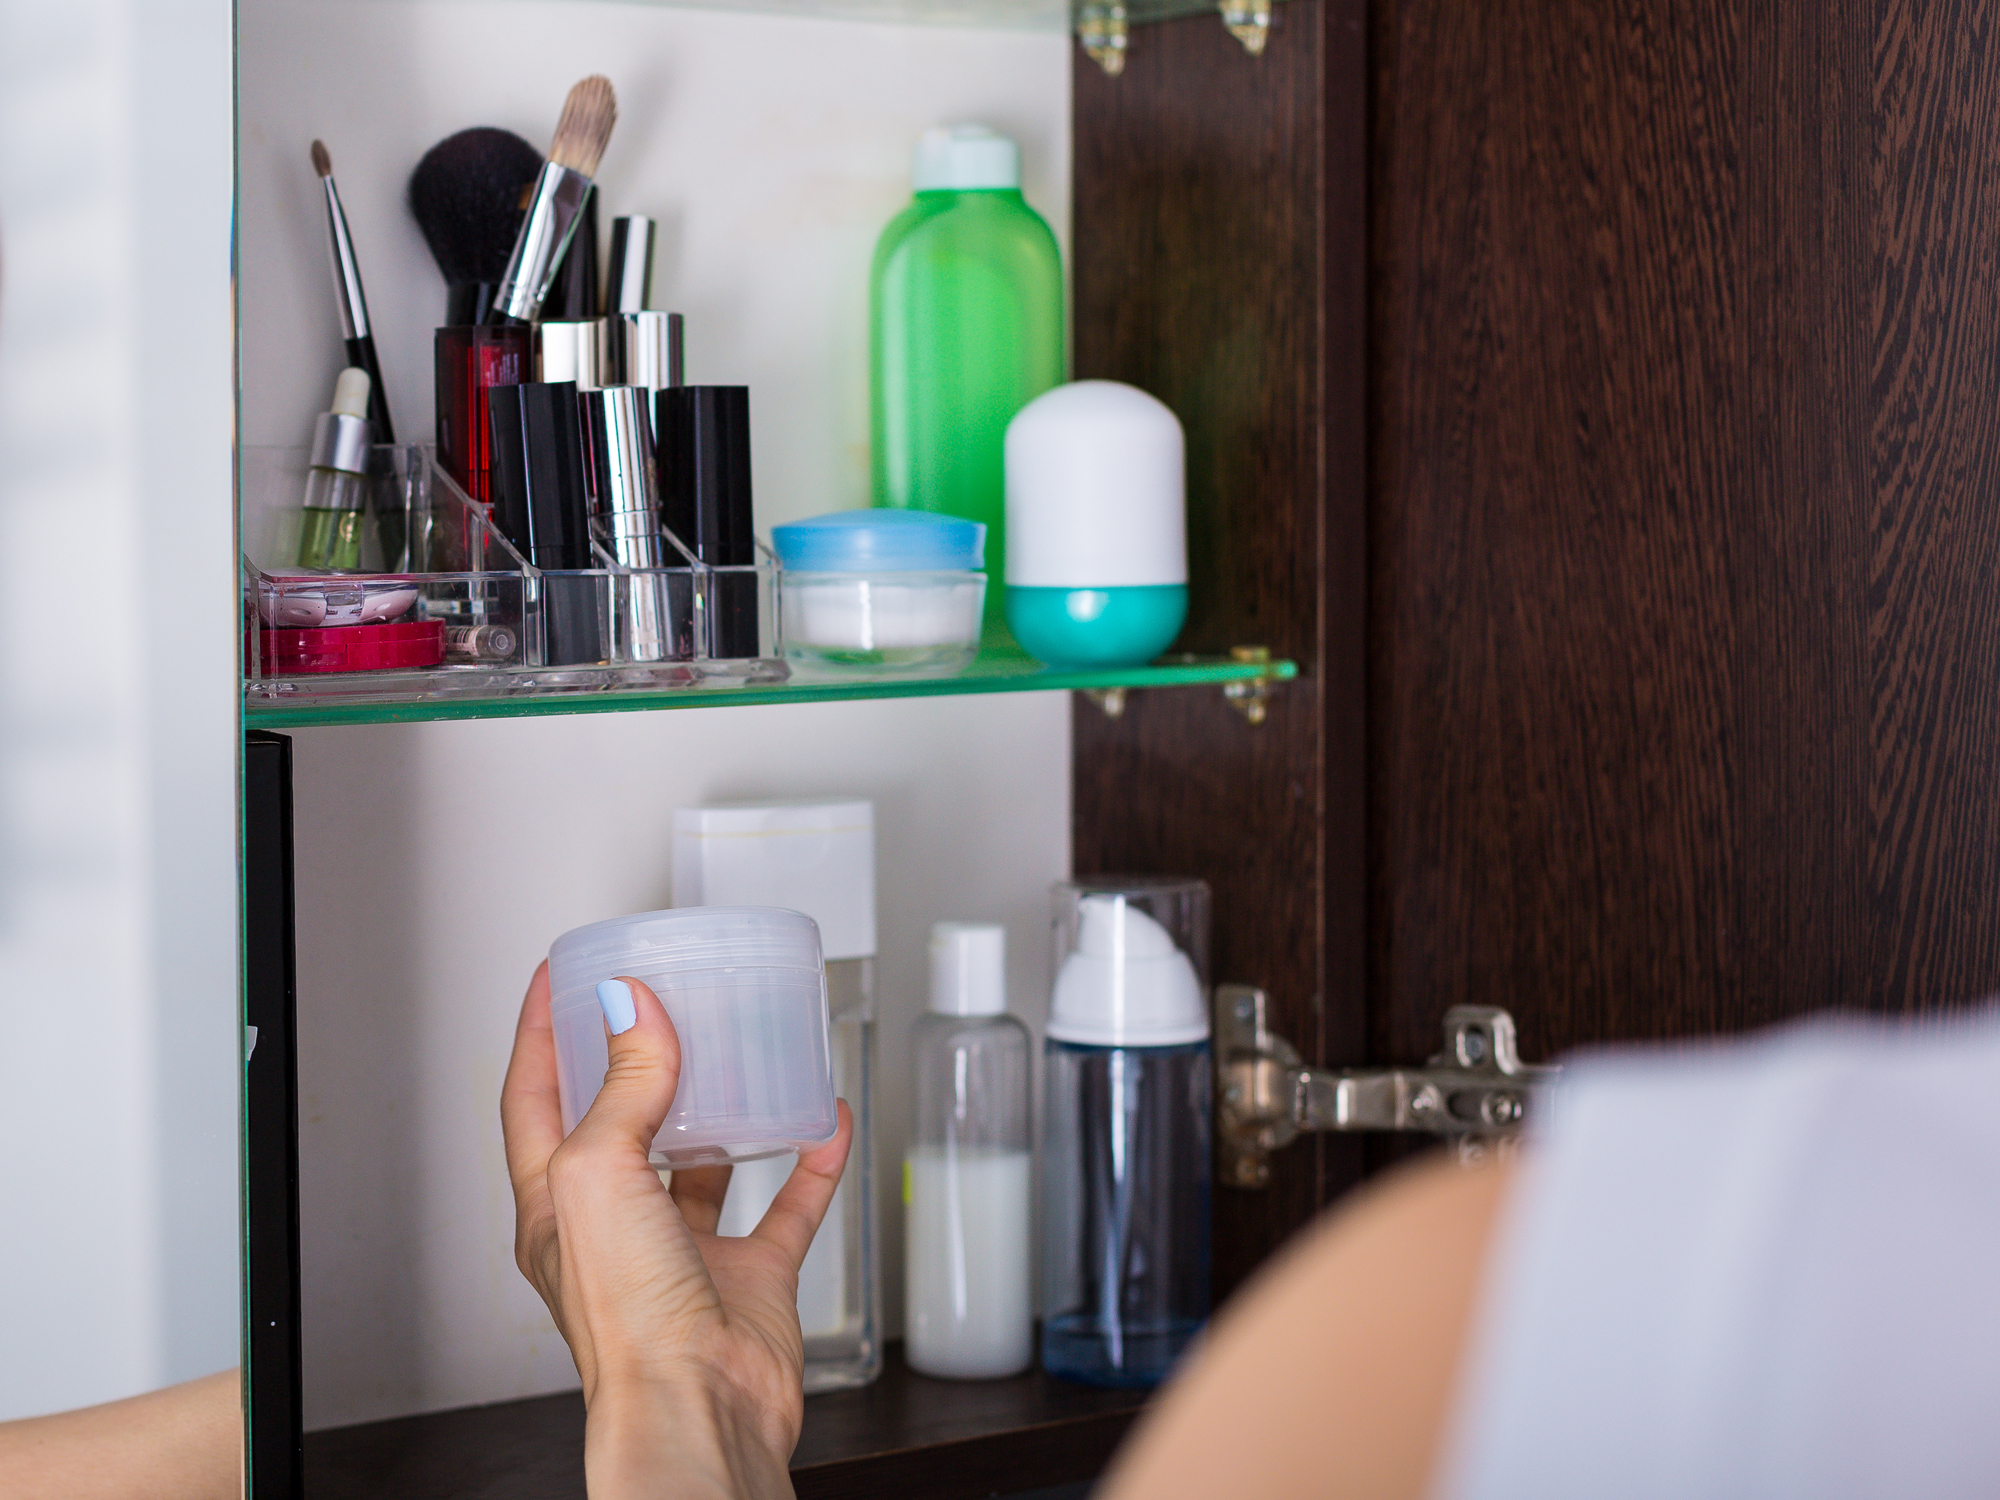 What your personal care routine does to your hormones